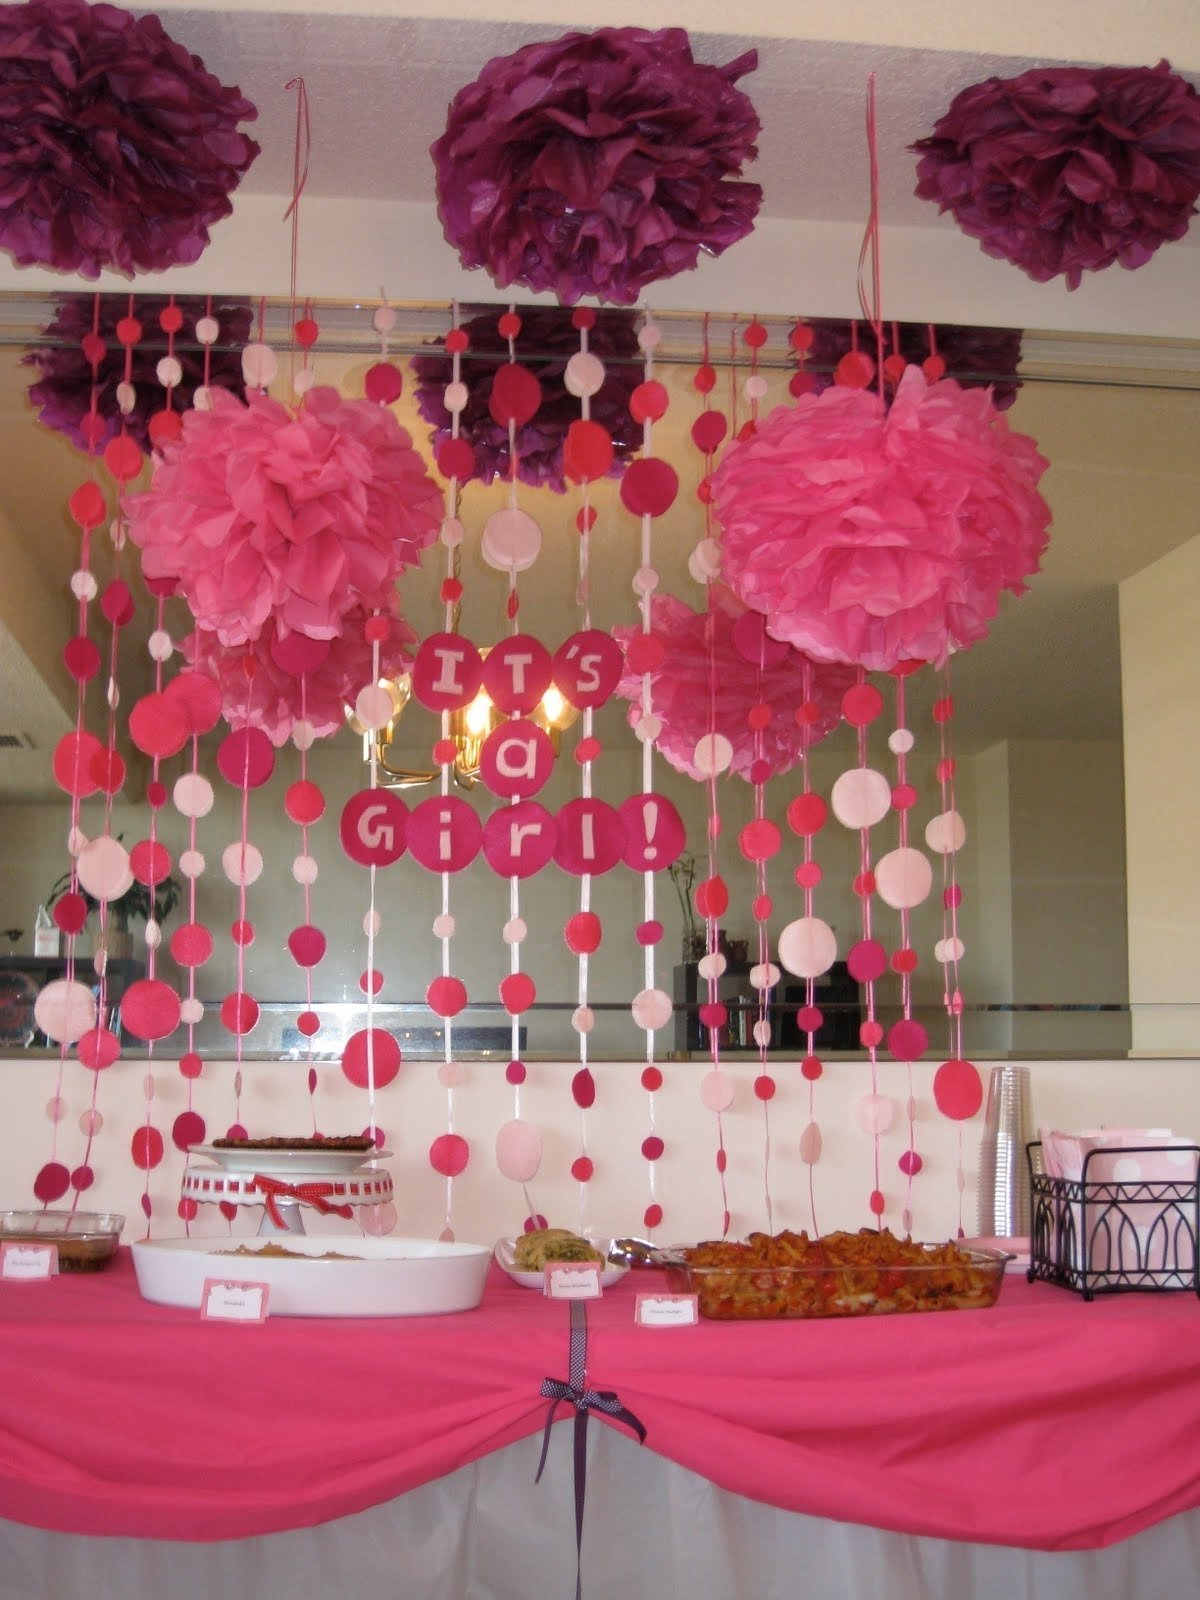 10 Unique Girl Baby Shower Decorating Ideas girl baby shower decorations ideas e280a2 baby showers ideas 2020